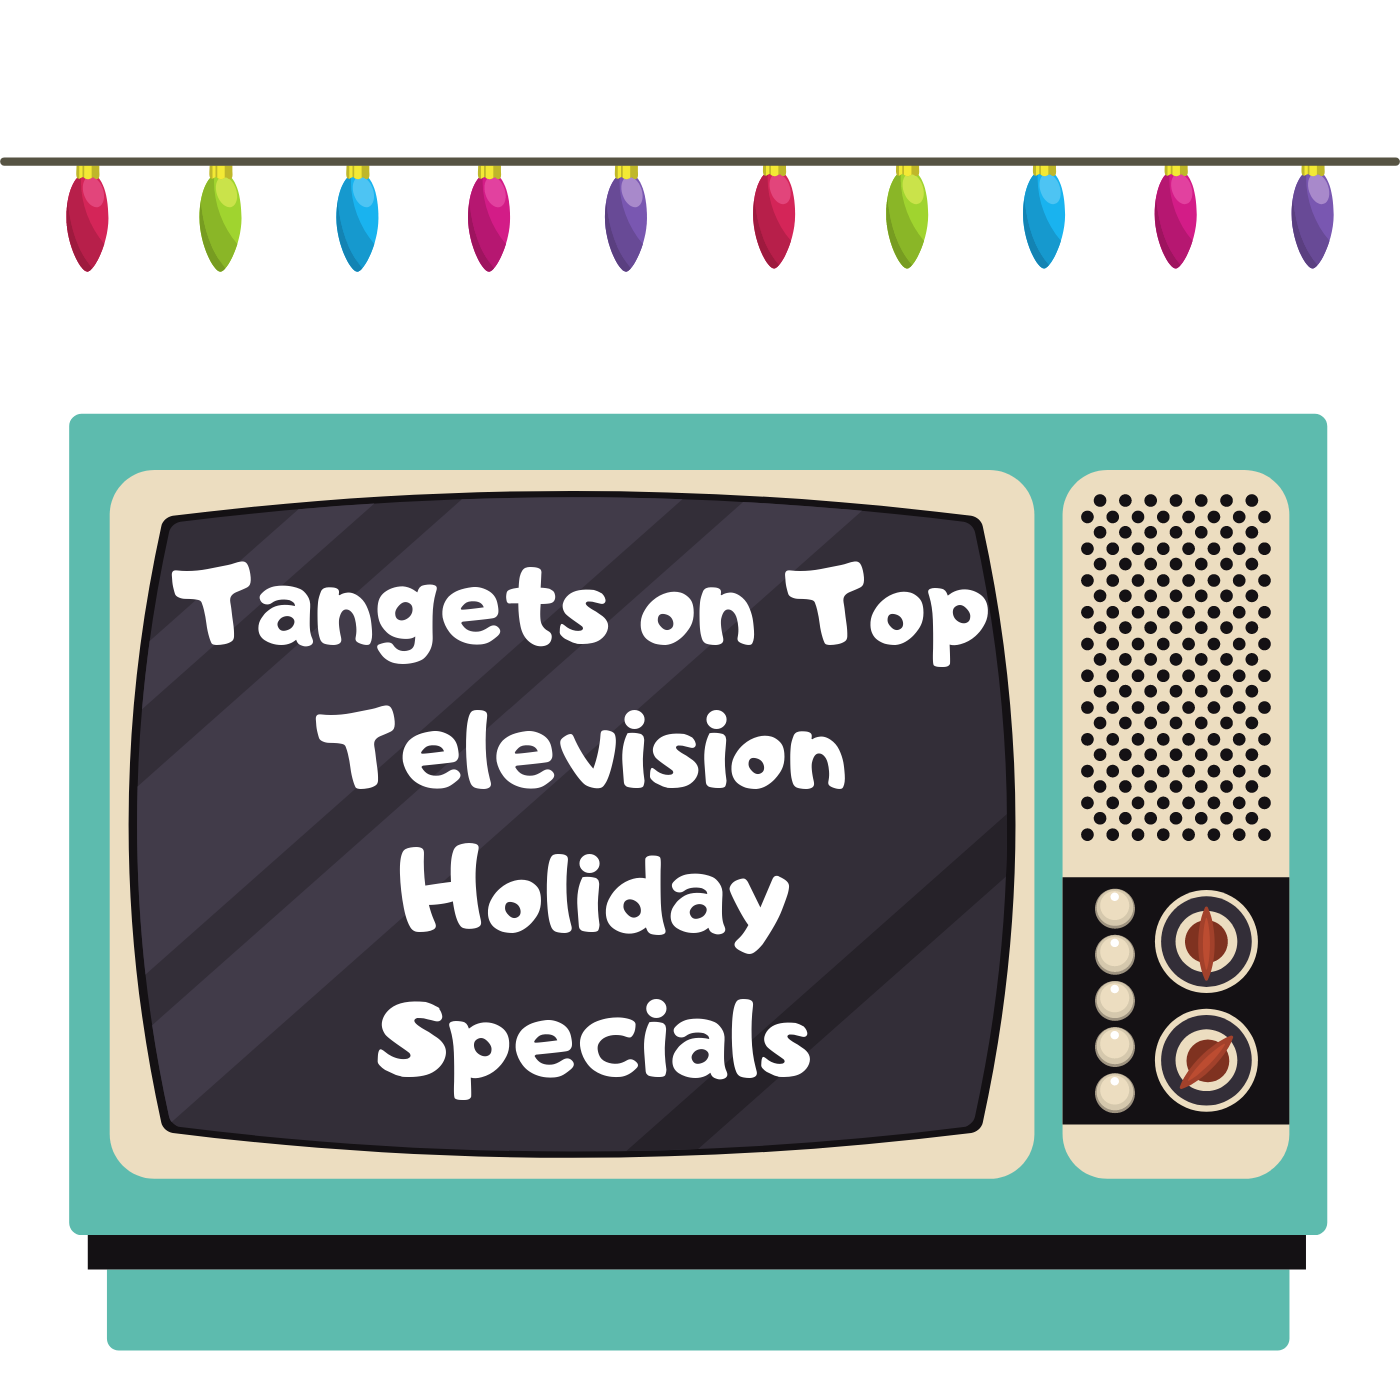 728 - Tangents on Top Television Holiday Specials